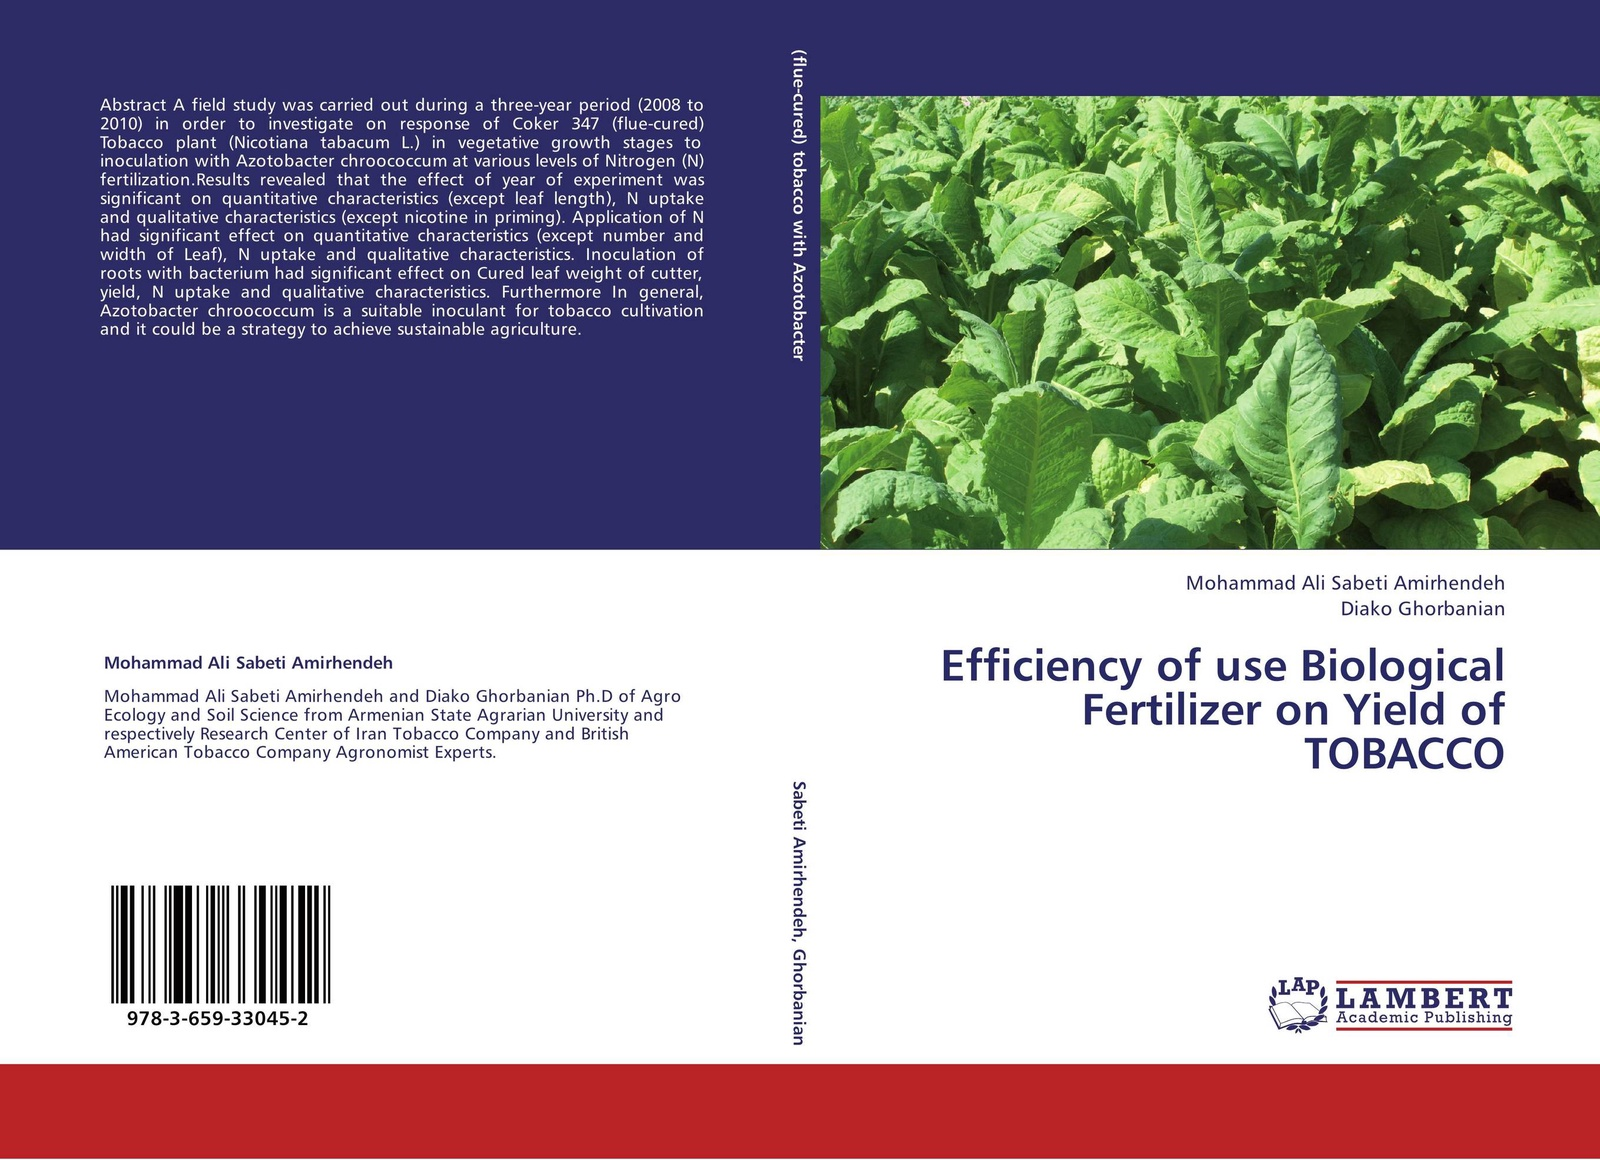 Mohammad Ali Sabeti Amirhendeh and Diako Ghorbanian Efficiency of use Biological Fertilizer on Yield of TOBACCO mohamed aymen elouaer maher souguir and cherif hannachi effect of nacl priming on germination behavior of fenugreek